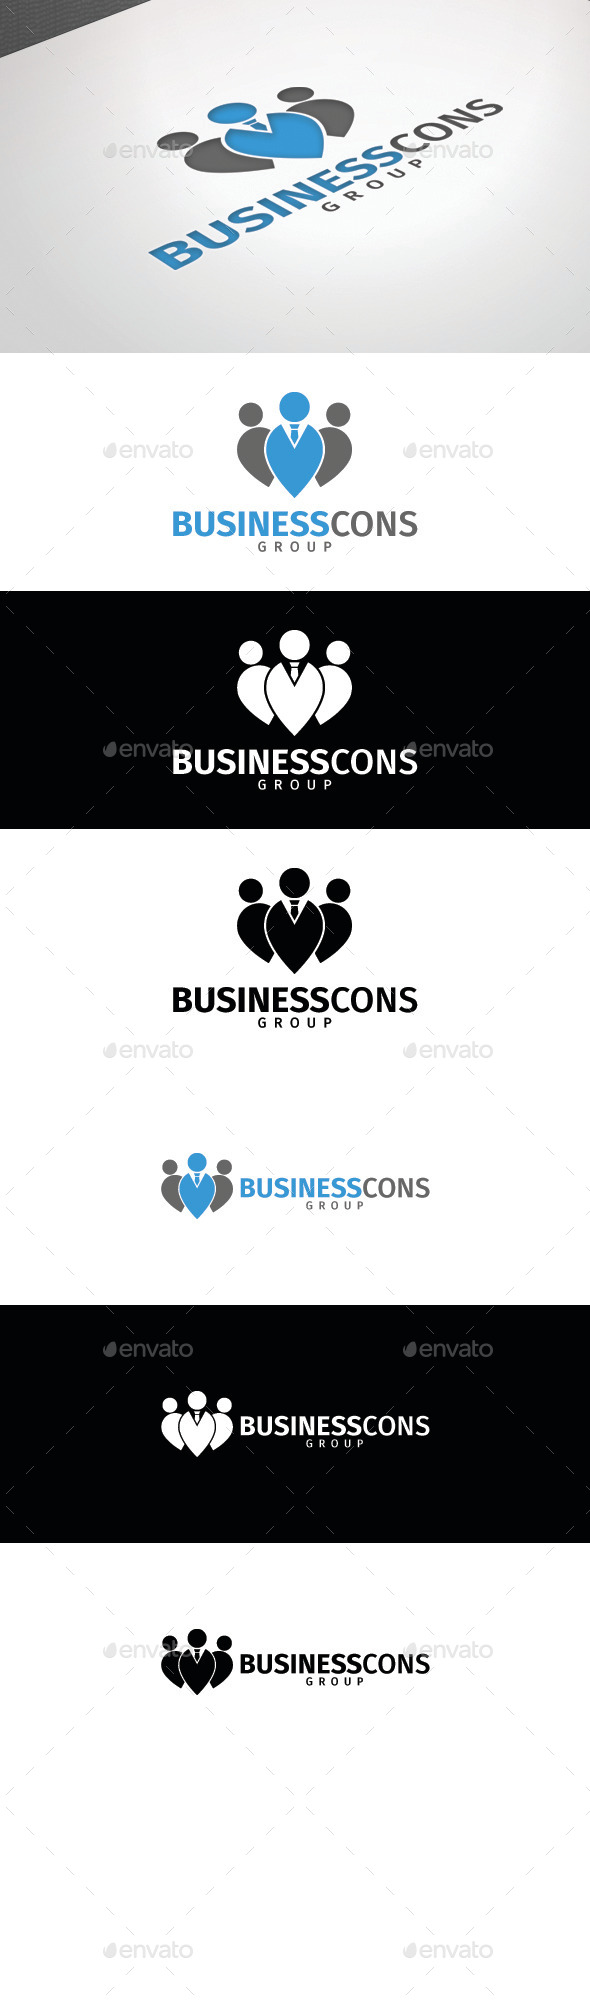 GraphicRiver Business Cons Group Logo Template 8808173